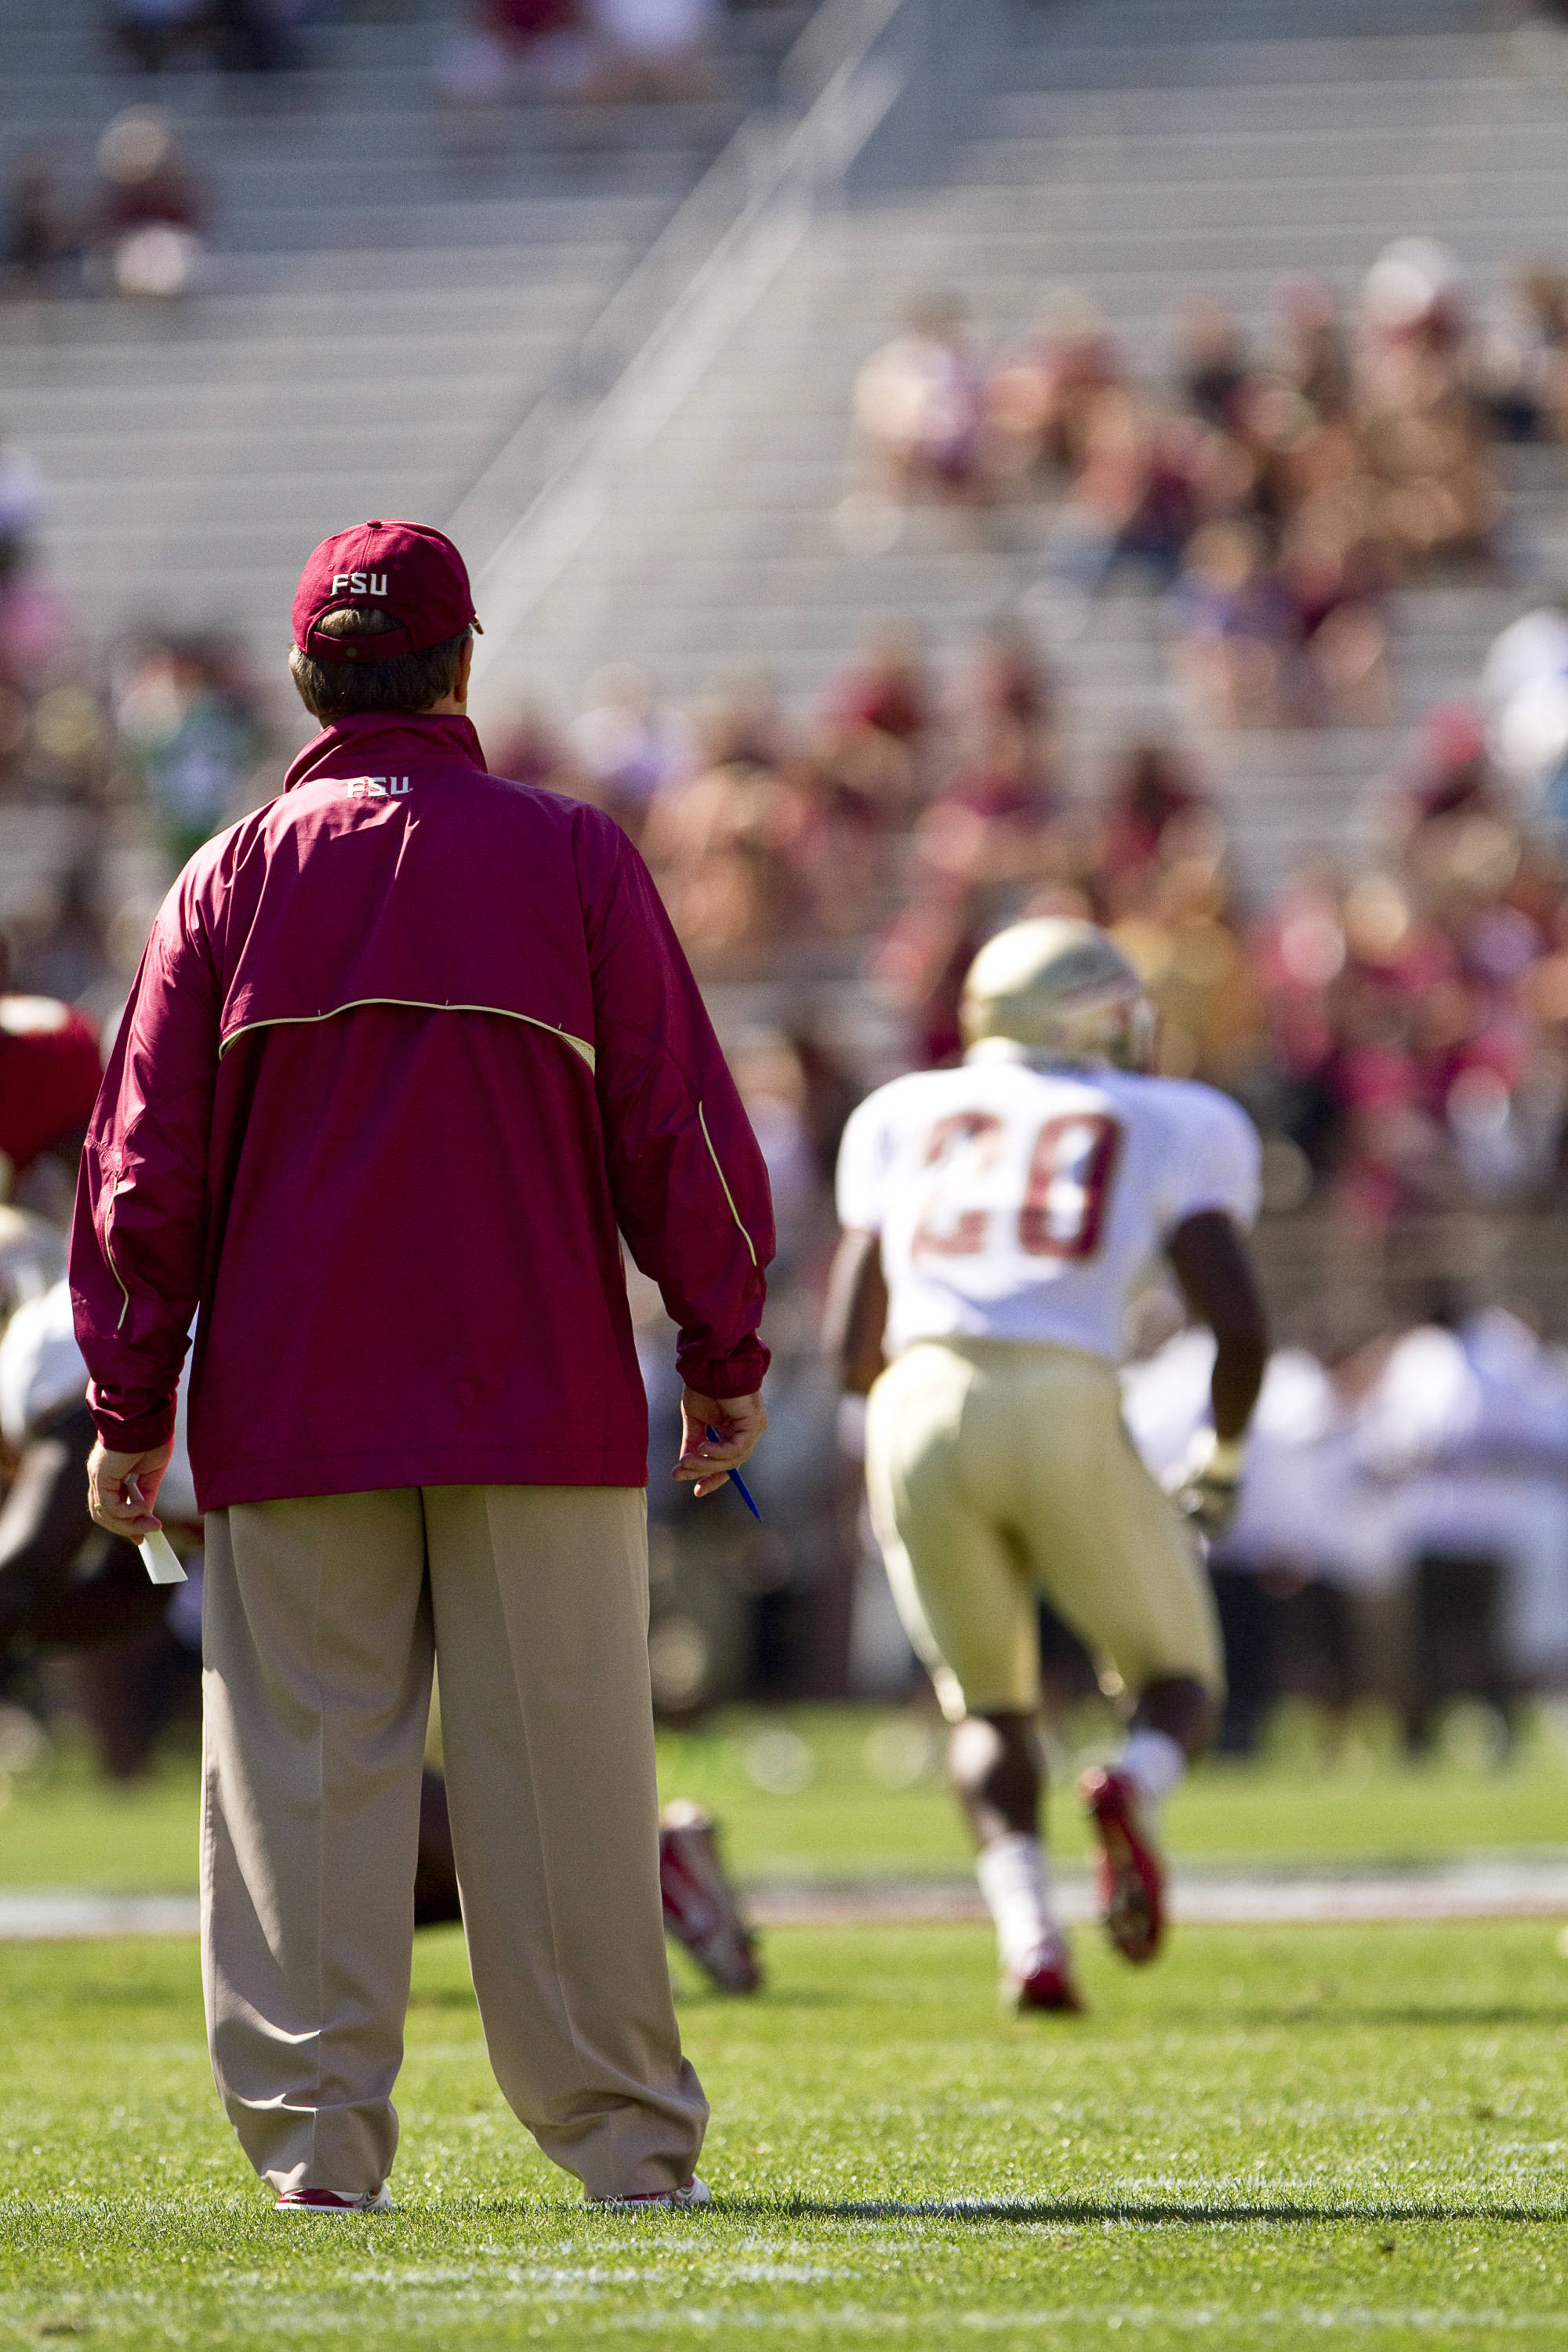 Jimbo Fisher watches the game on the field.